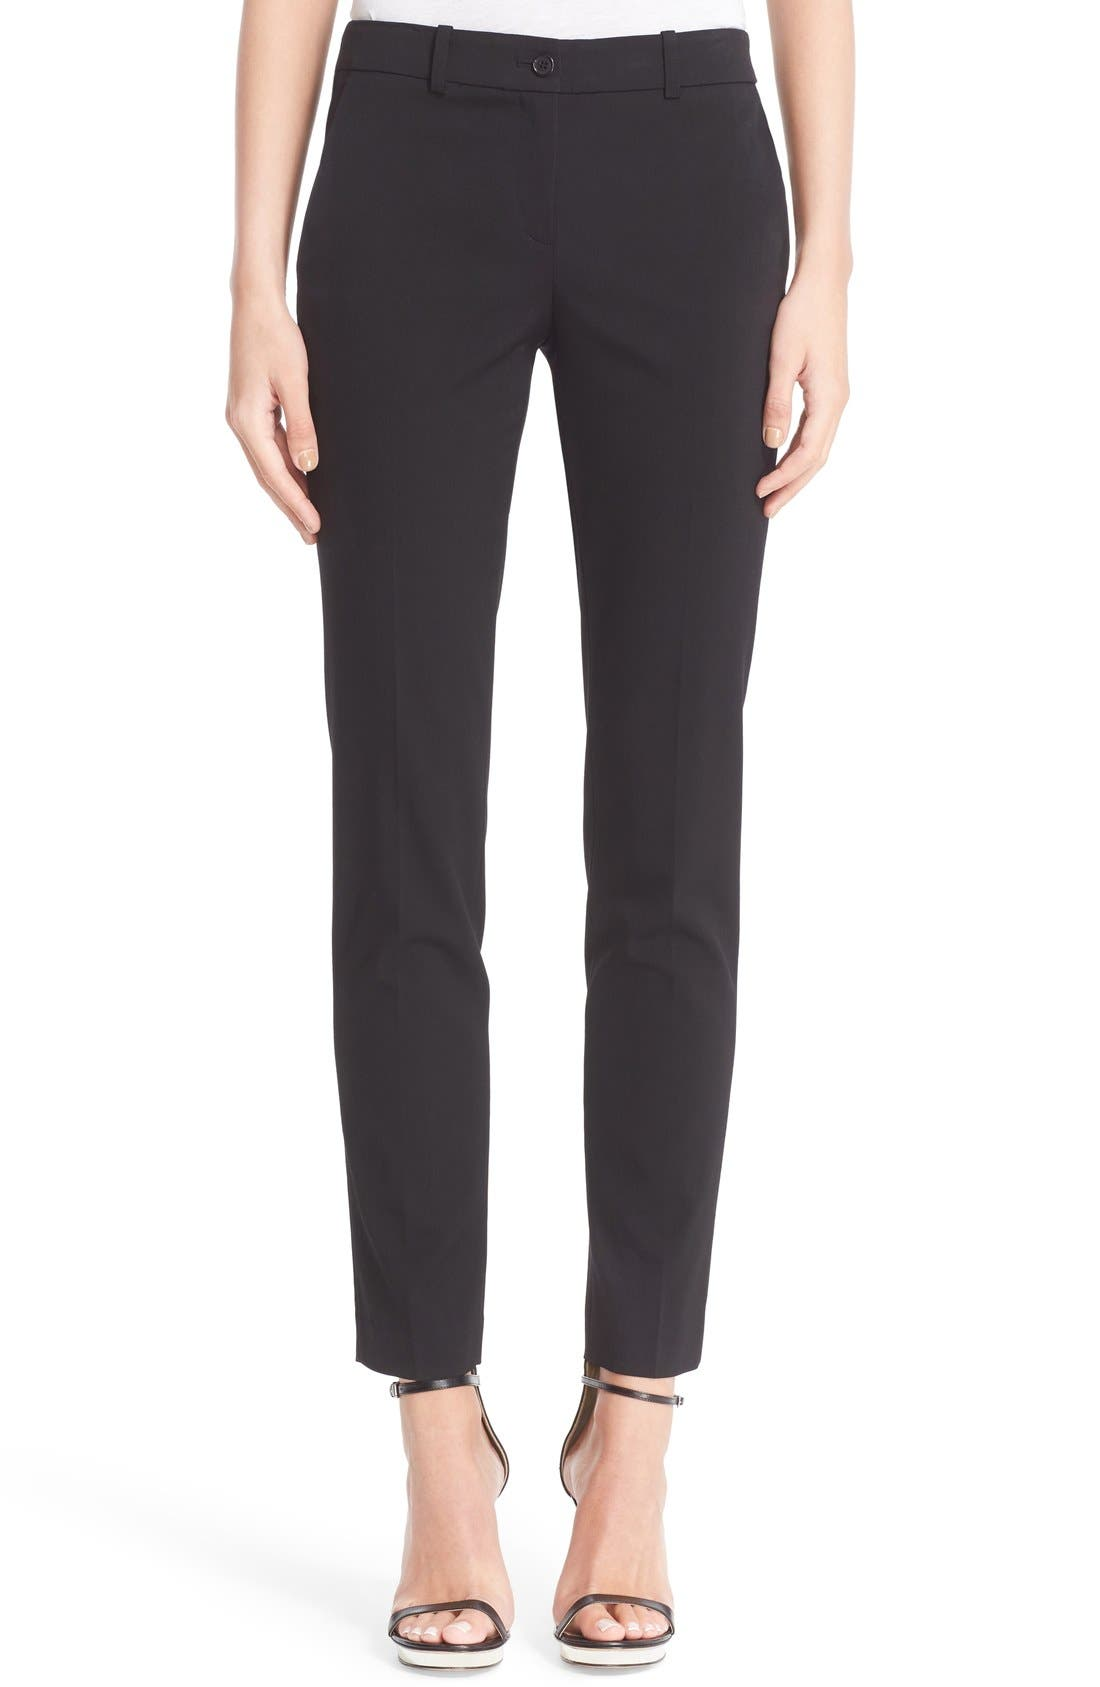 Michael Kors Samantha Straight Leg Pants